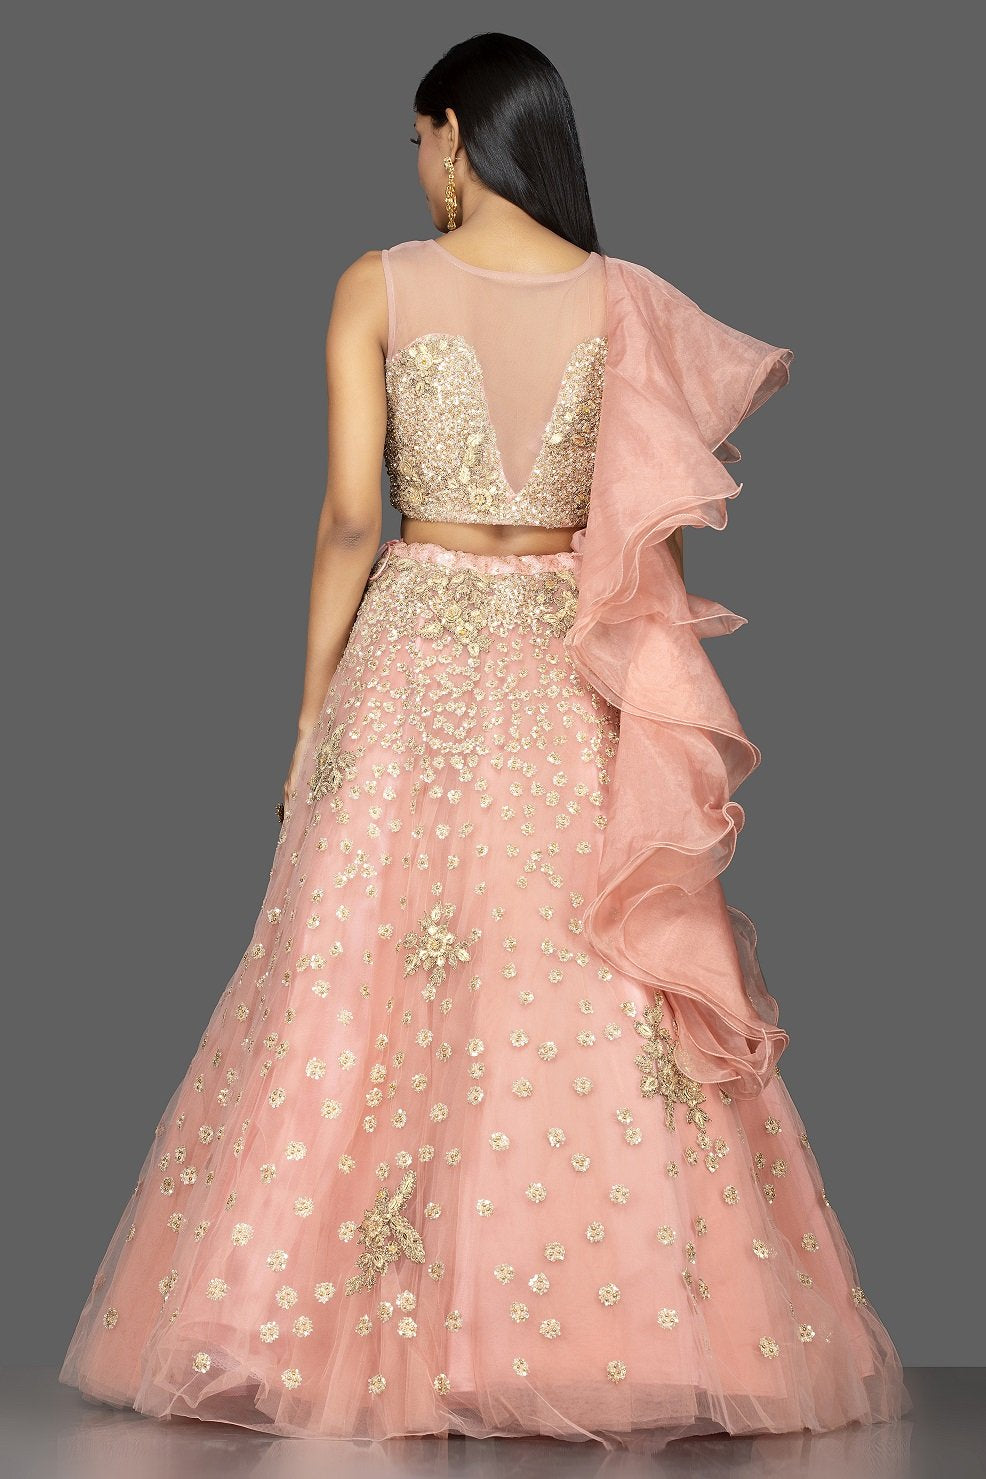 Shop exquisite dusty pink zardozi embroidery net lehenga online in USA with net dupatta. Look radiant on weddings and special occasions in splendid designer lehengas crafted with finest embroideries and stunning silhouettes from Pure Elegance Indian fashion boutique in USA..-back